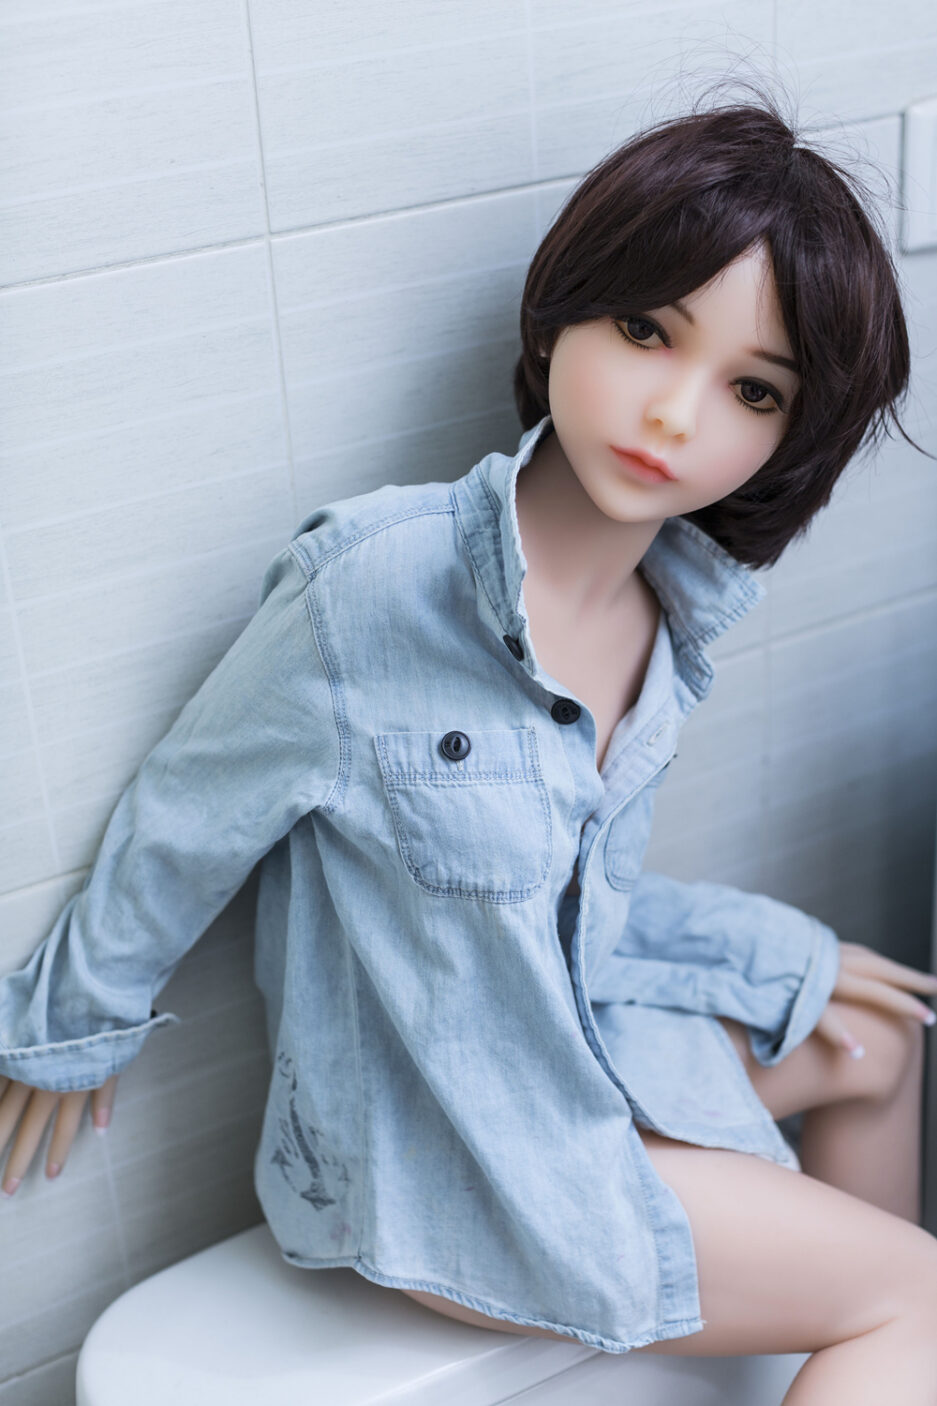 Small boobs sex doll with short hair